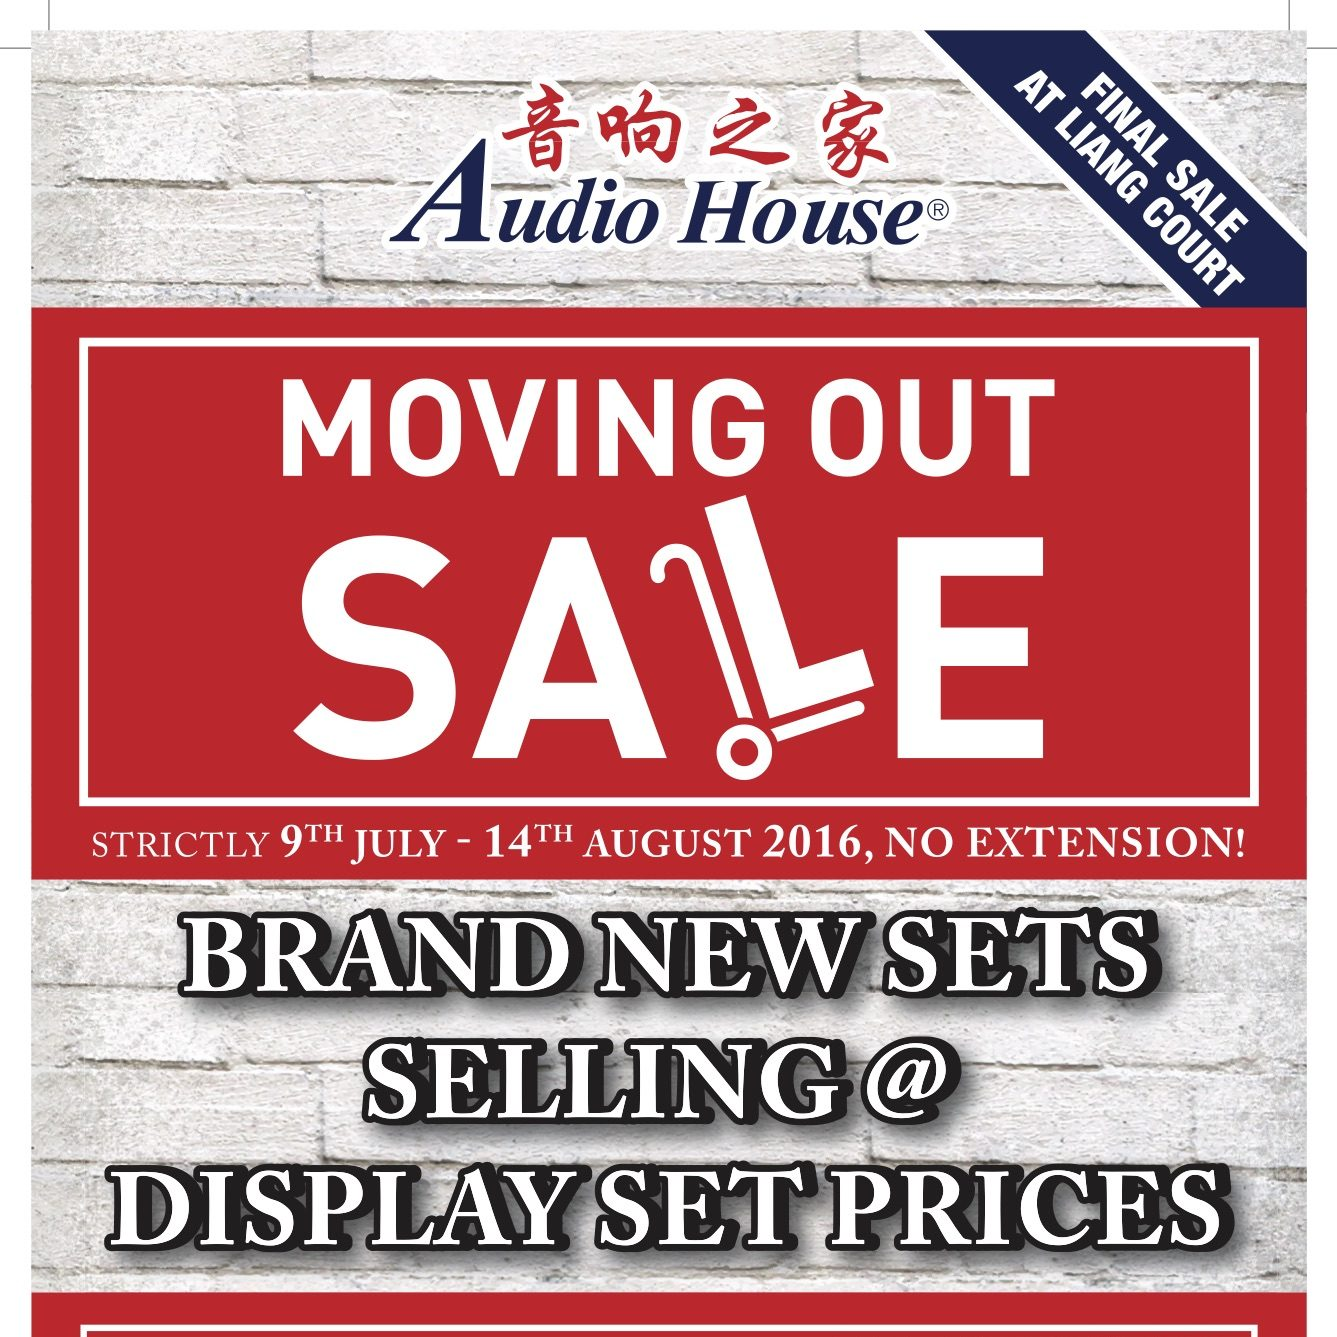 Audio House Moving Out Sale Singapore Promotion 9 Jul to 14 Aug 2016